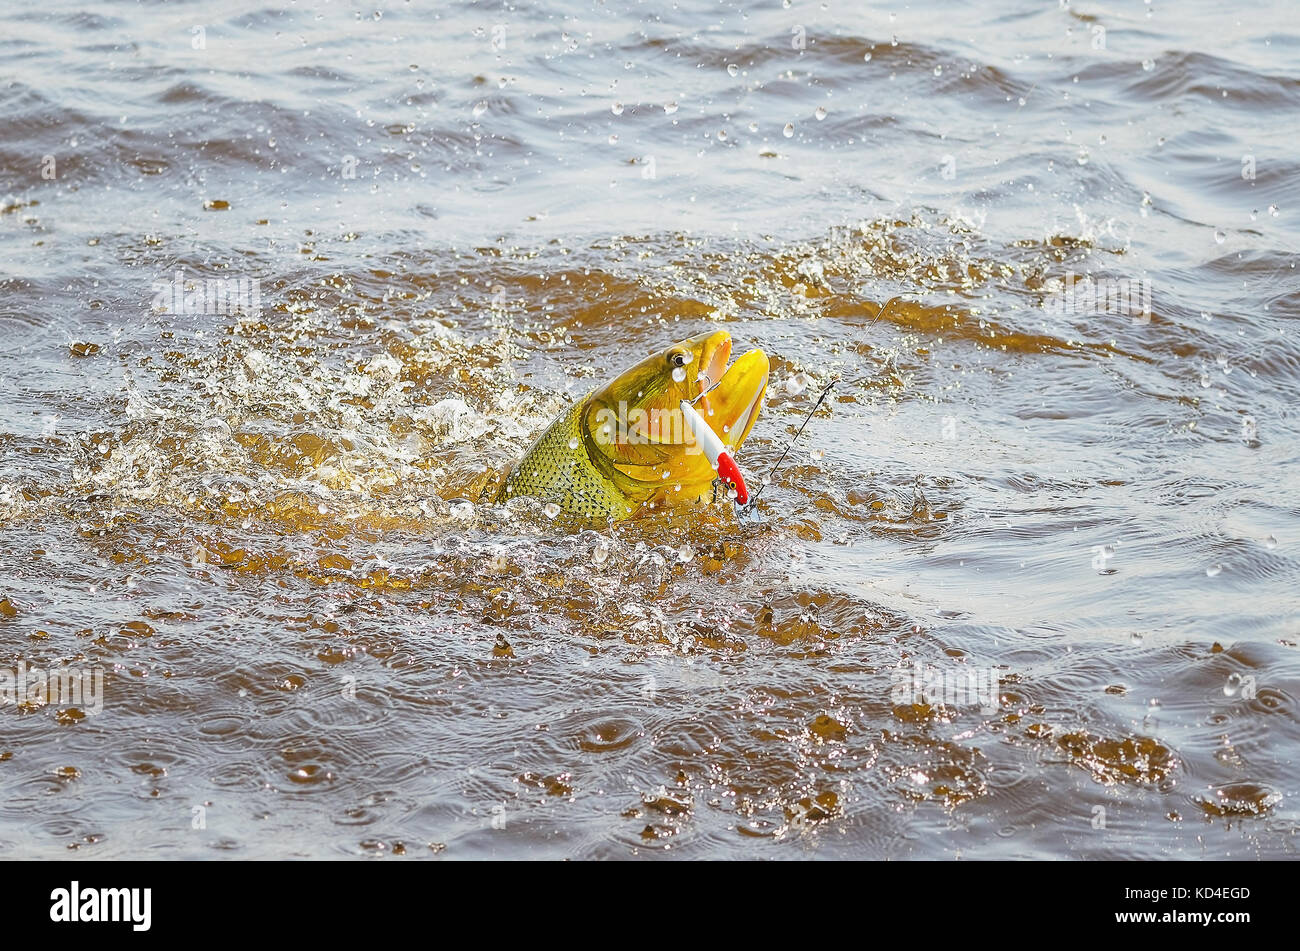 Dourado fish hooked by a artificial bait fighting and jumping out of water, beautiful golden fish, sport fishing Stock Photo